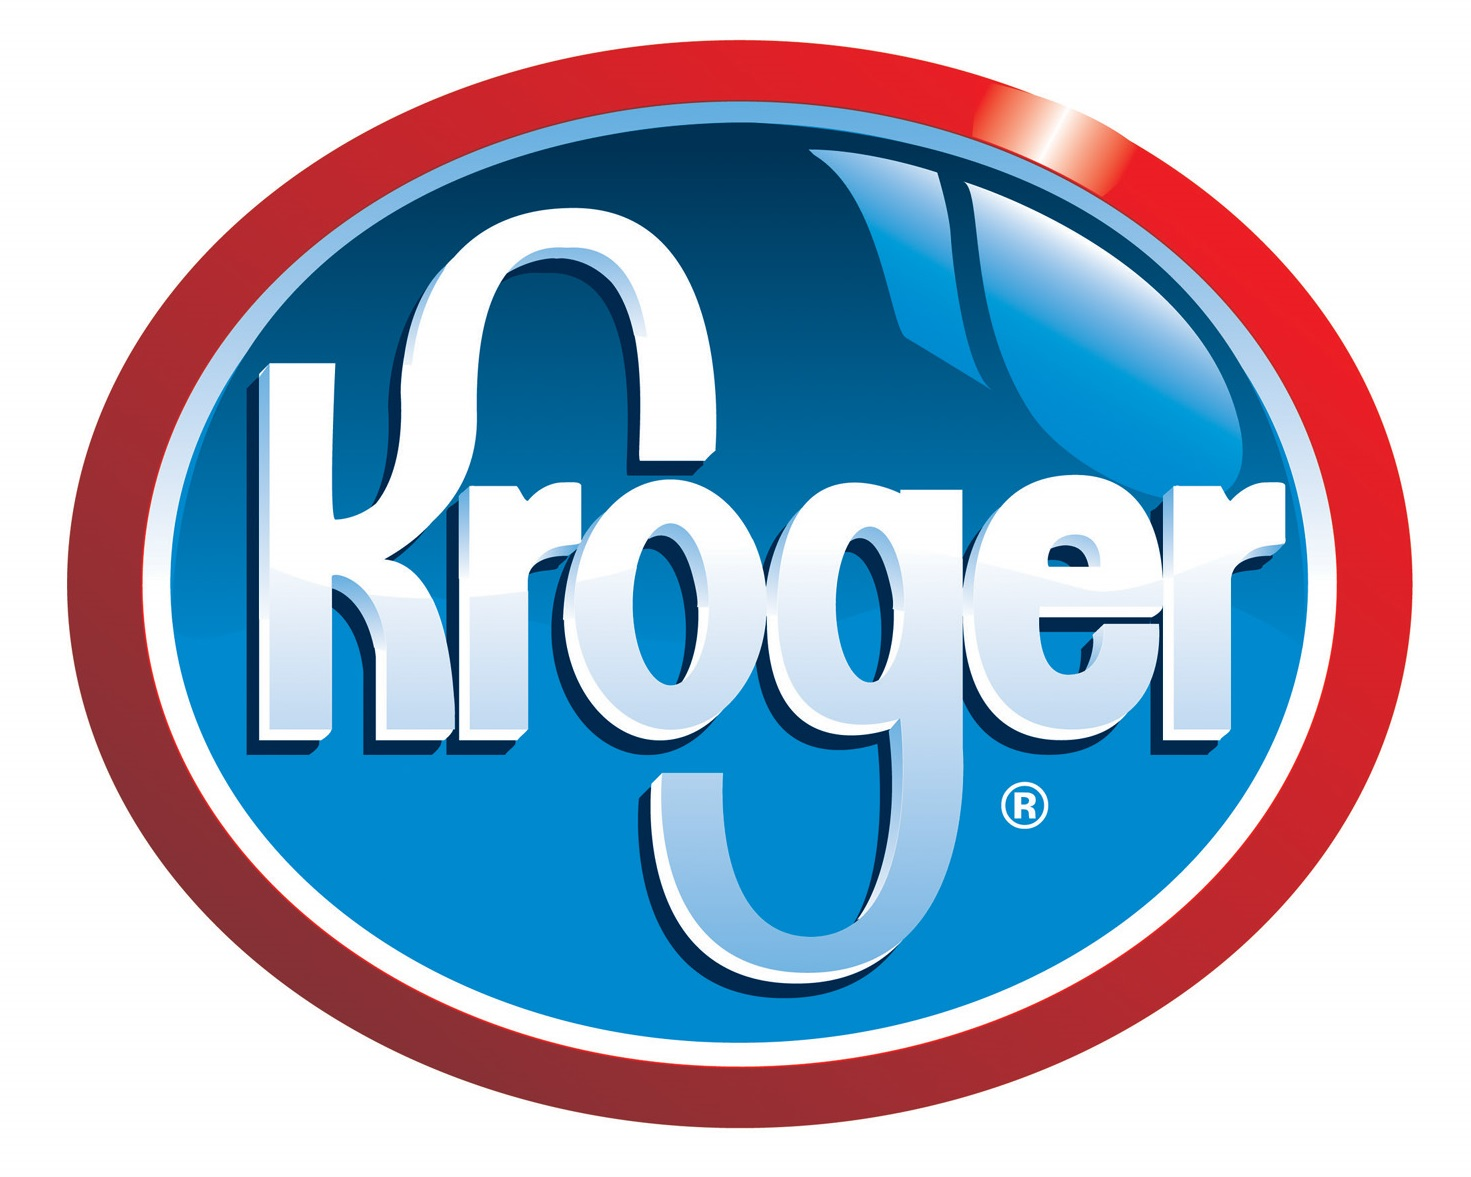 kroger company case analysis essay Analysis kroger executive summary this strategic analysis of the kroger company will take a look at the changing trends of grocery retailers, profitability and strategic position included is a pestel analysis and porter's five forces model for a closer look at kroger and the industry.